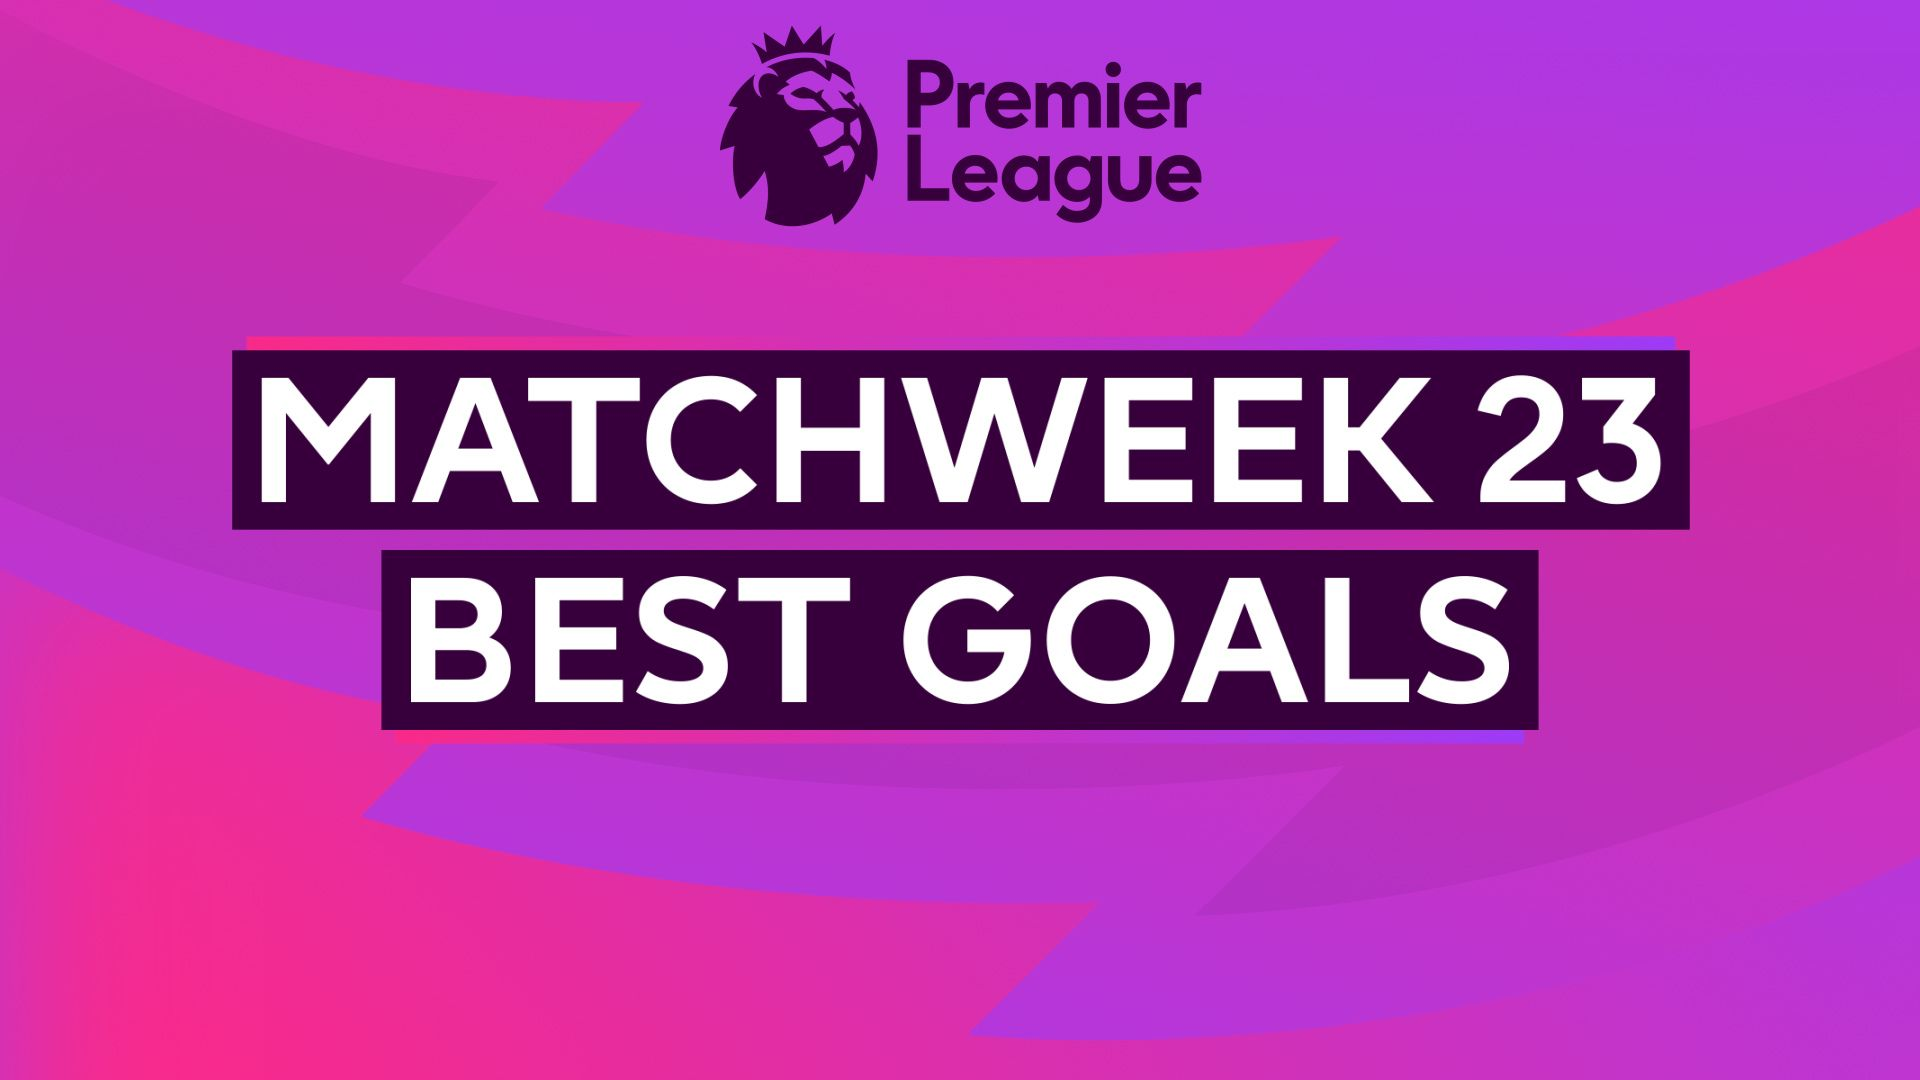 PL Best Goals: Foden, Son, Ward-Prowse